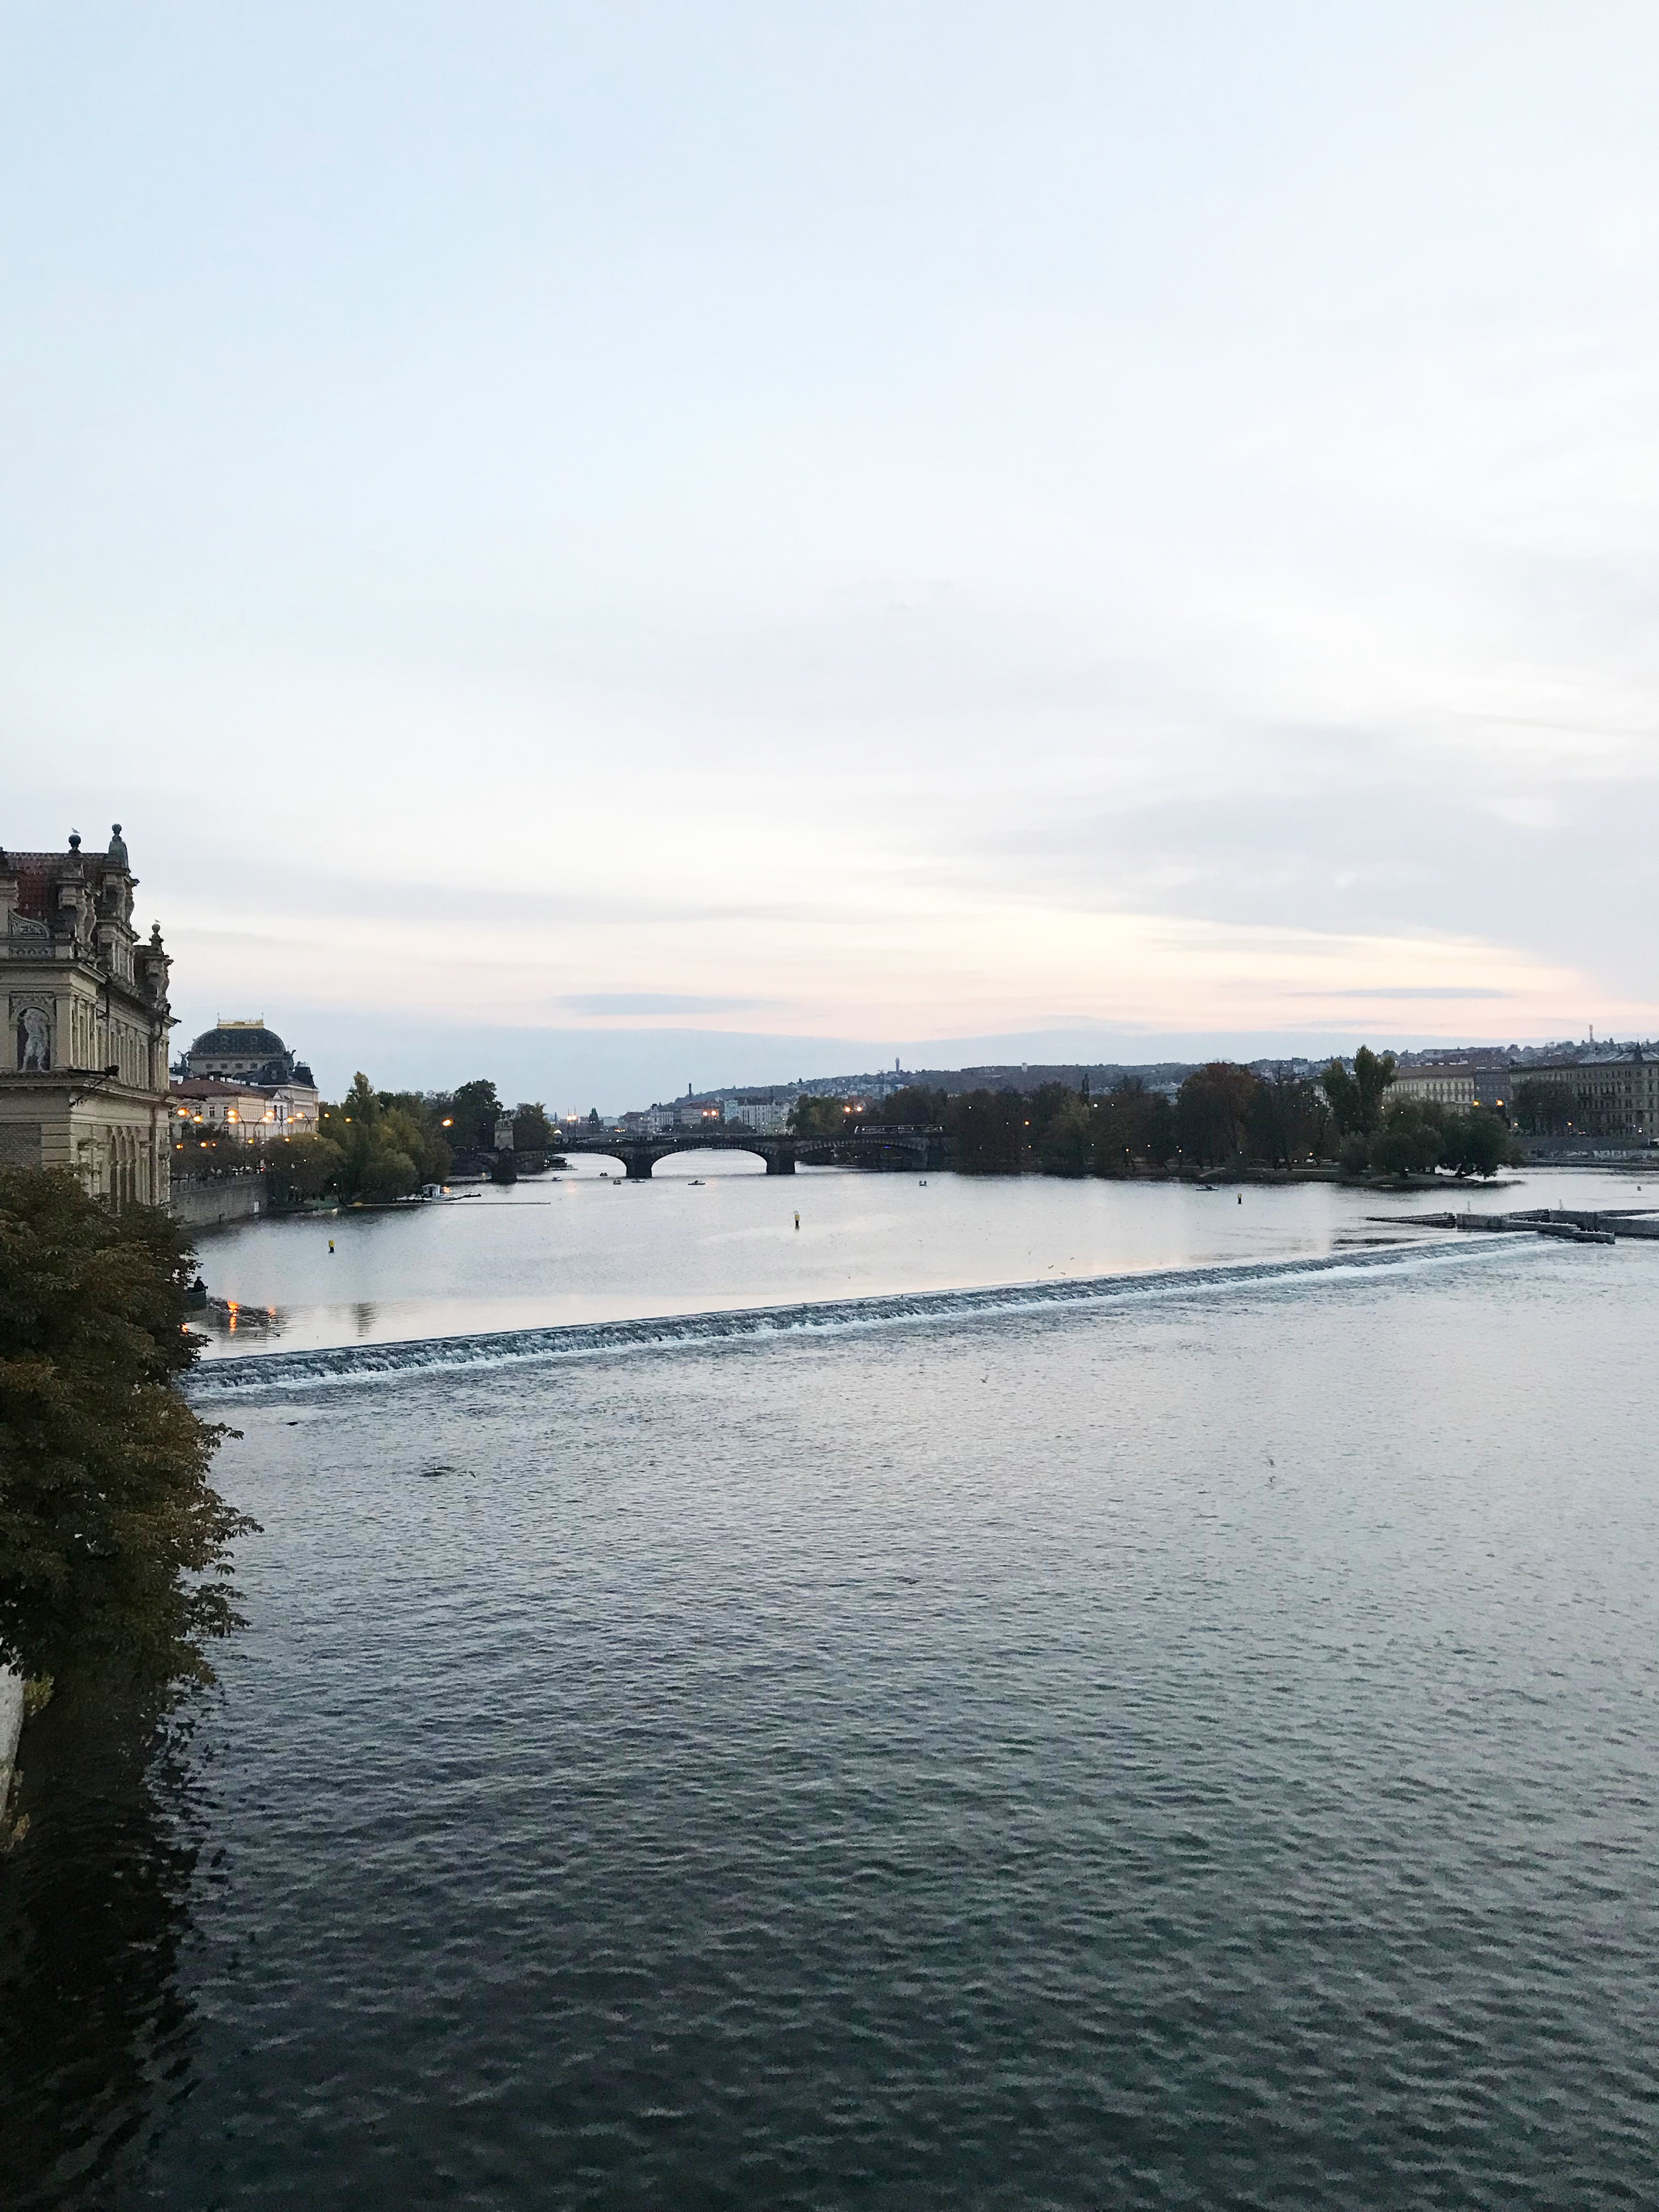 After filling our bellies, we walked across the Charles Bridge. Can't explain in words how beautiful it is.